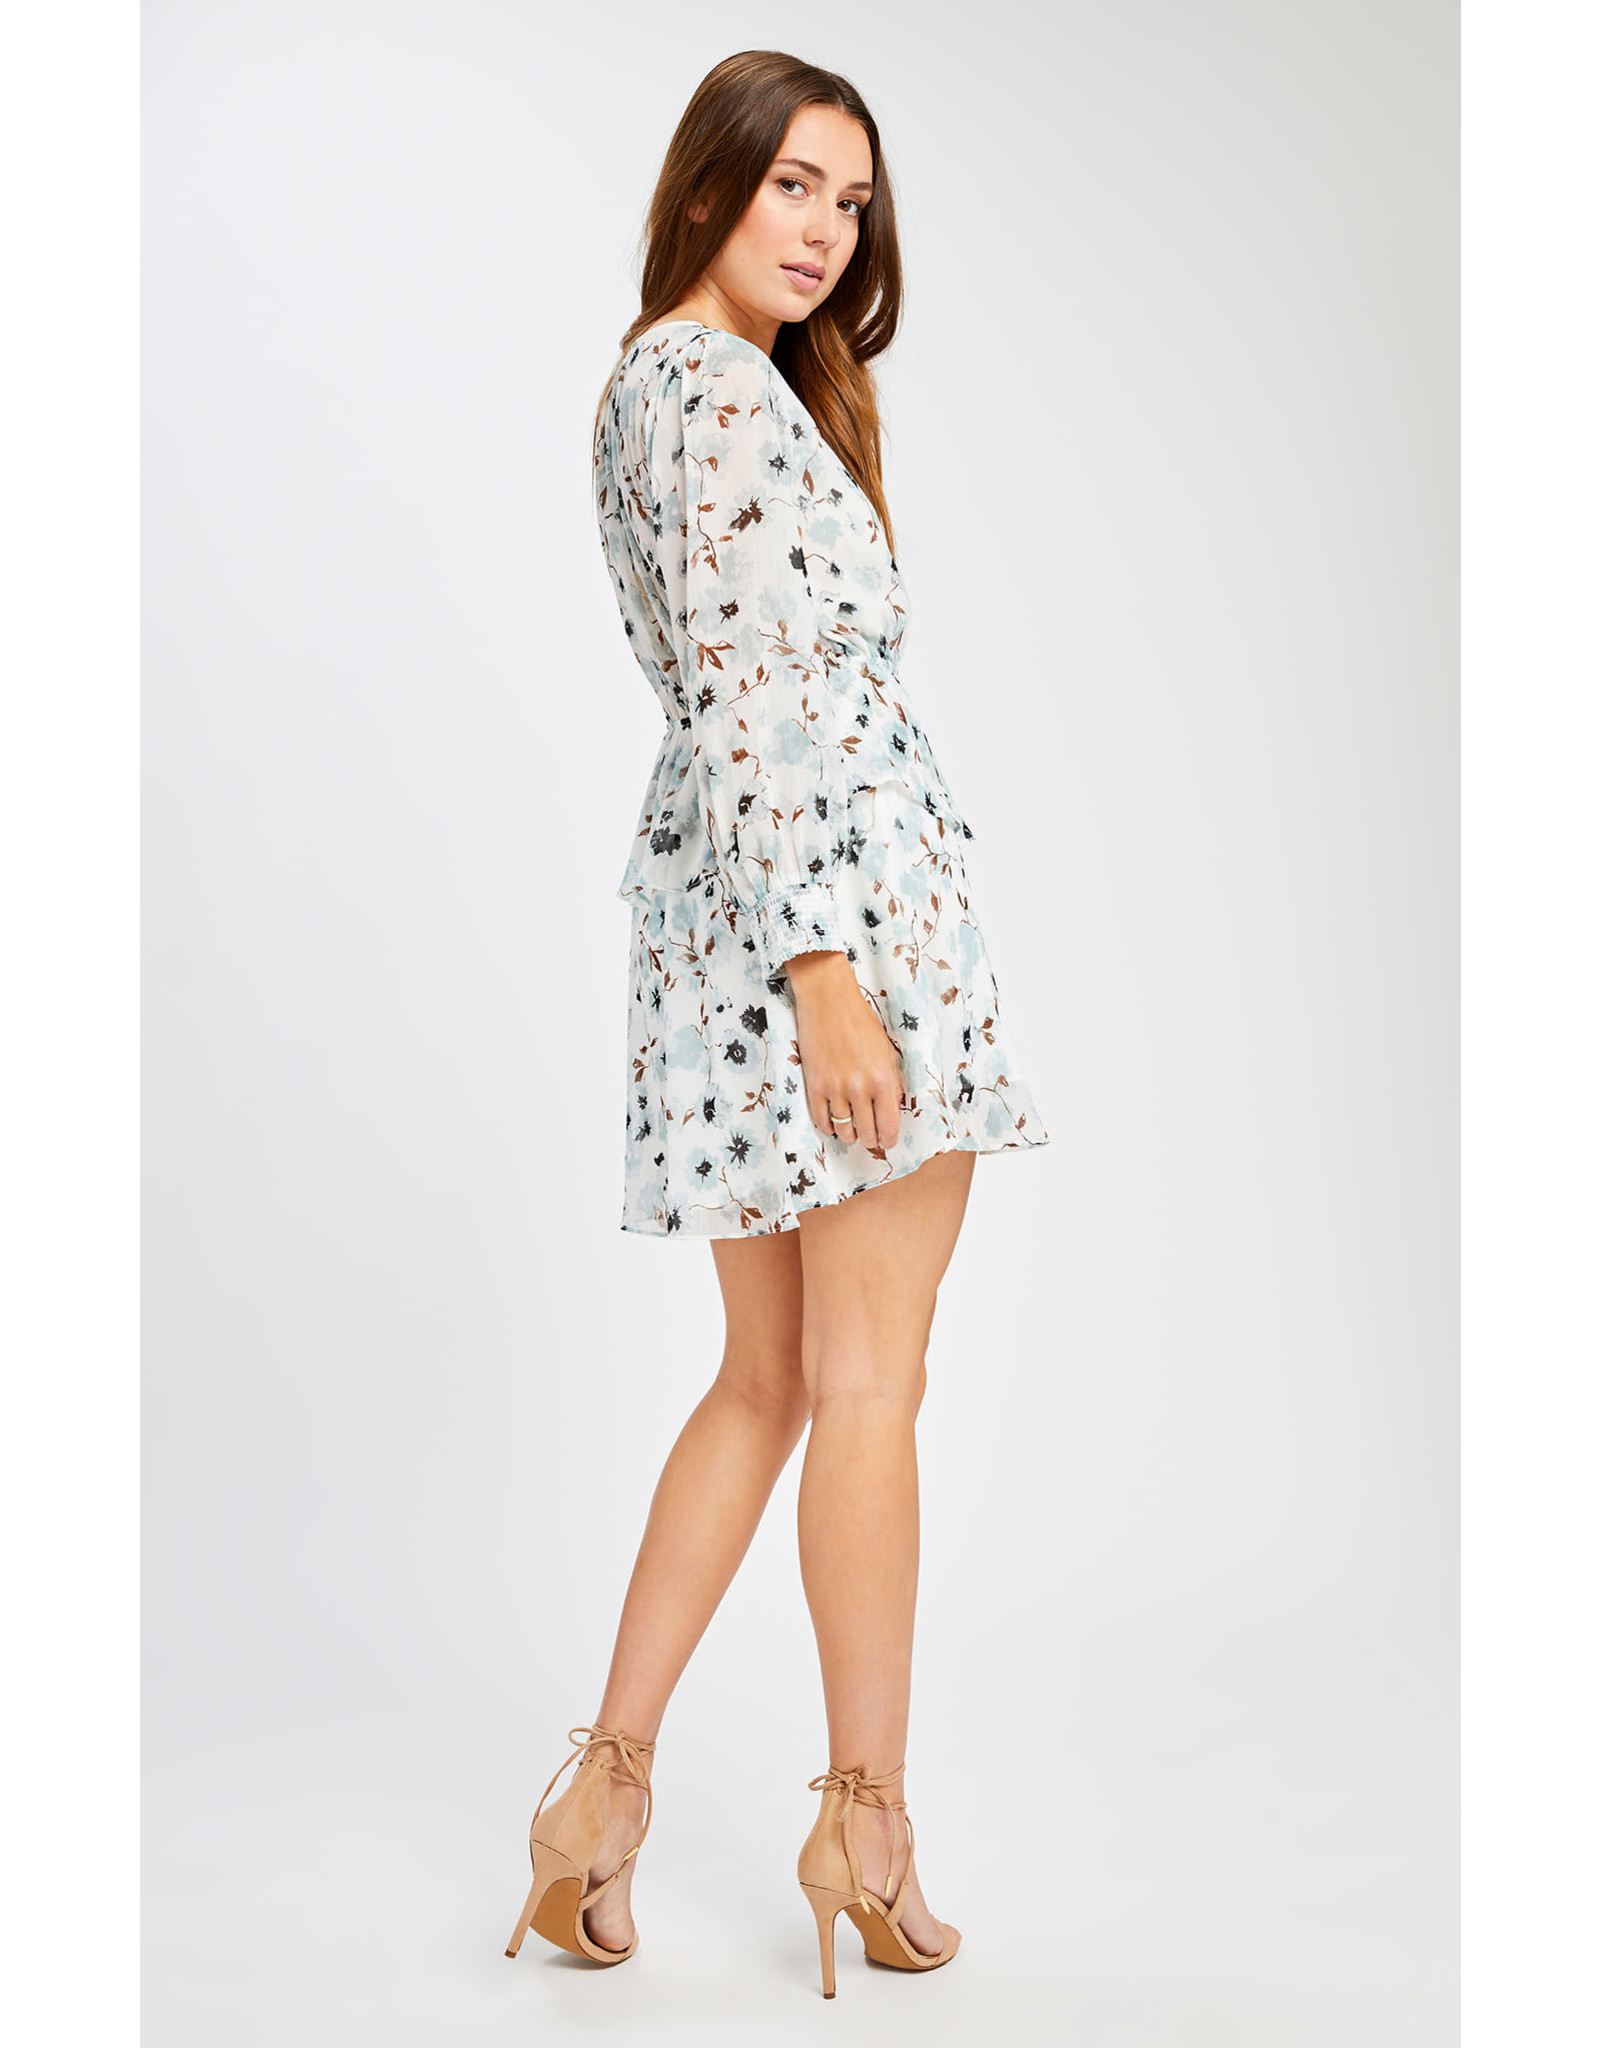 Gentle Fawn - LS Floral Fit & Flare Dress